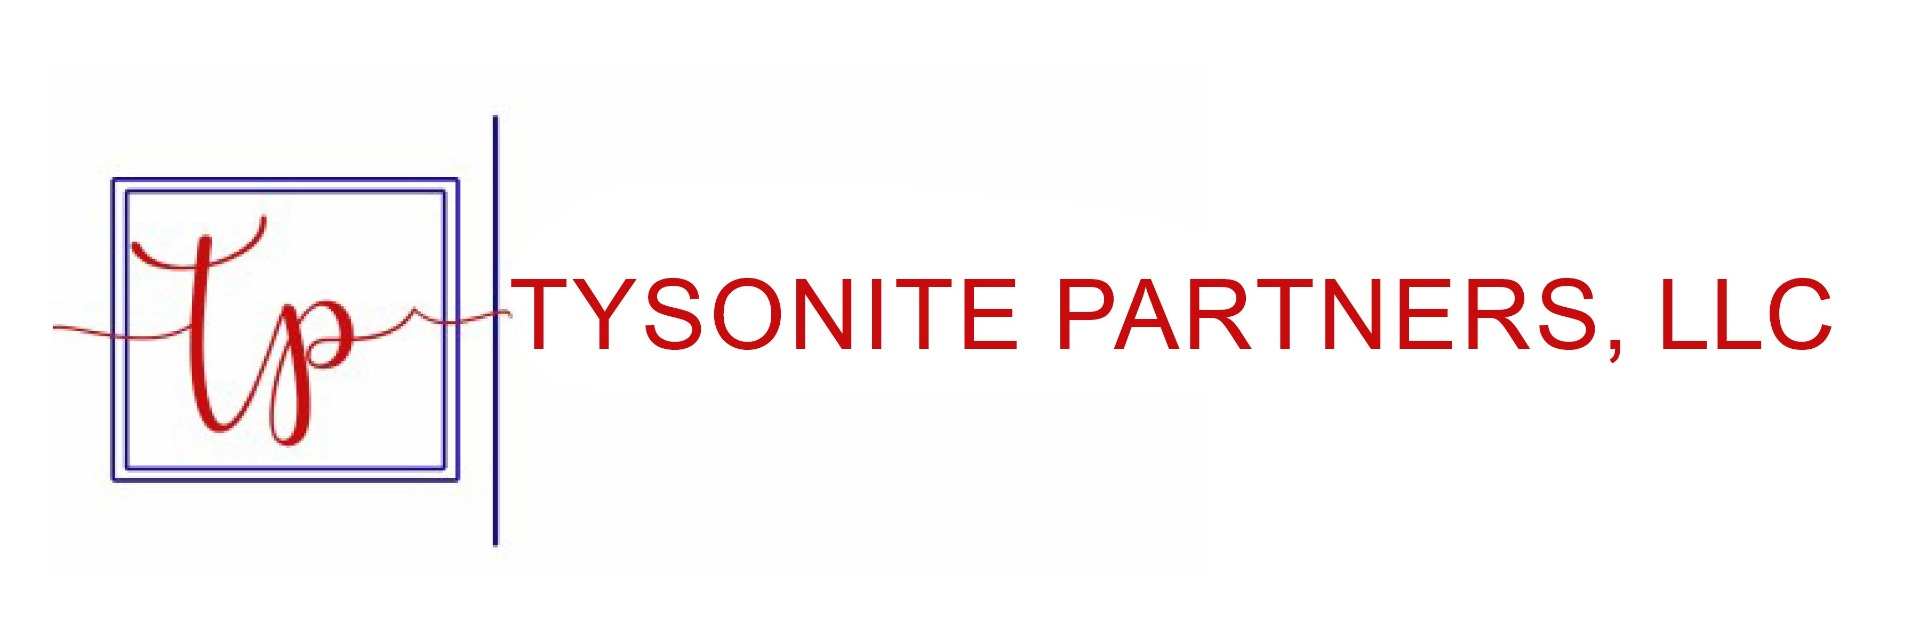 tysonite-partners-llc-logo-2-